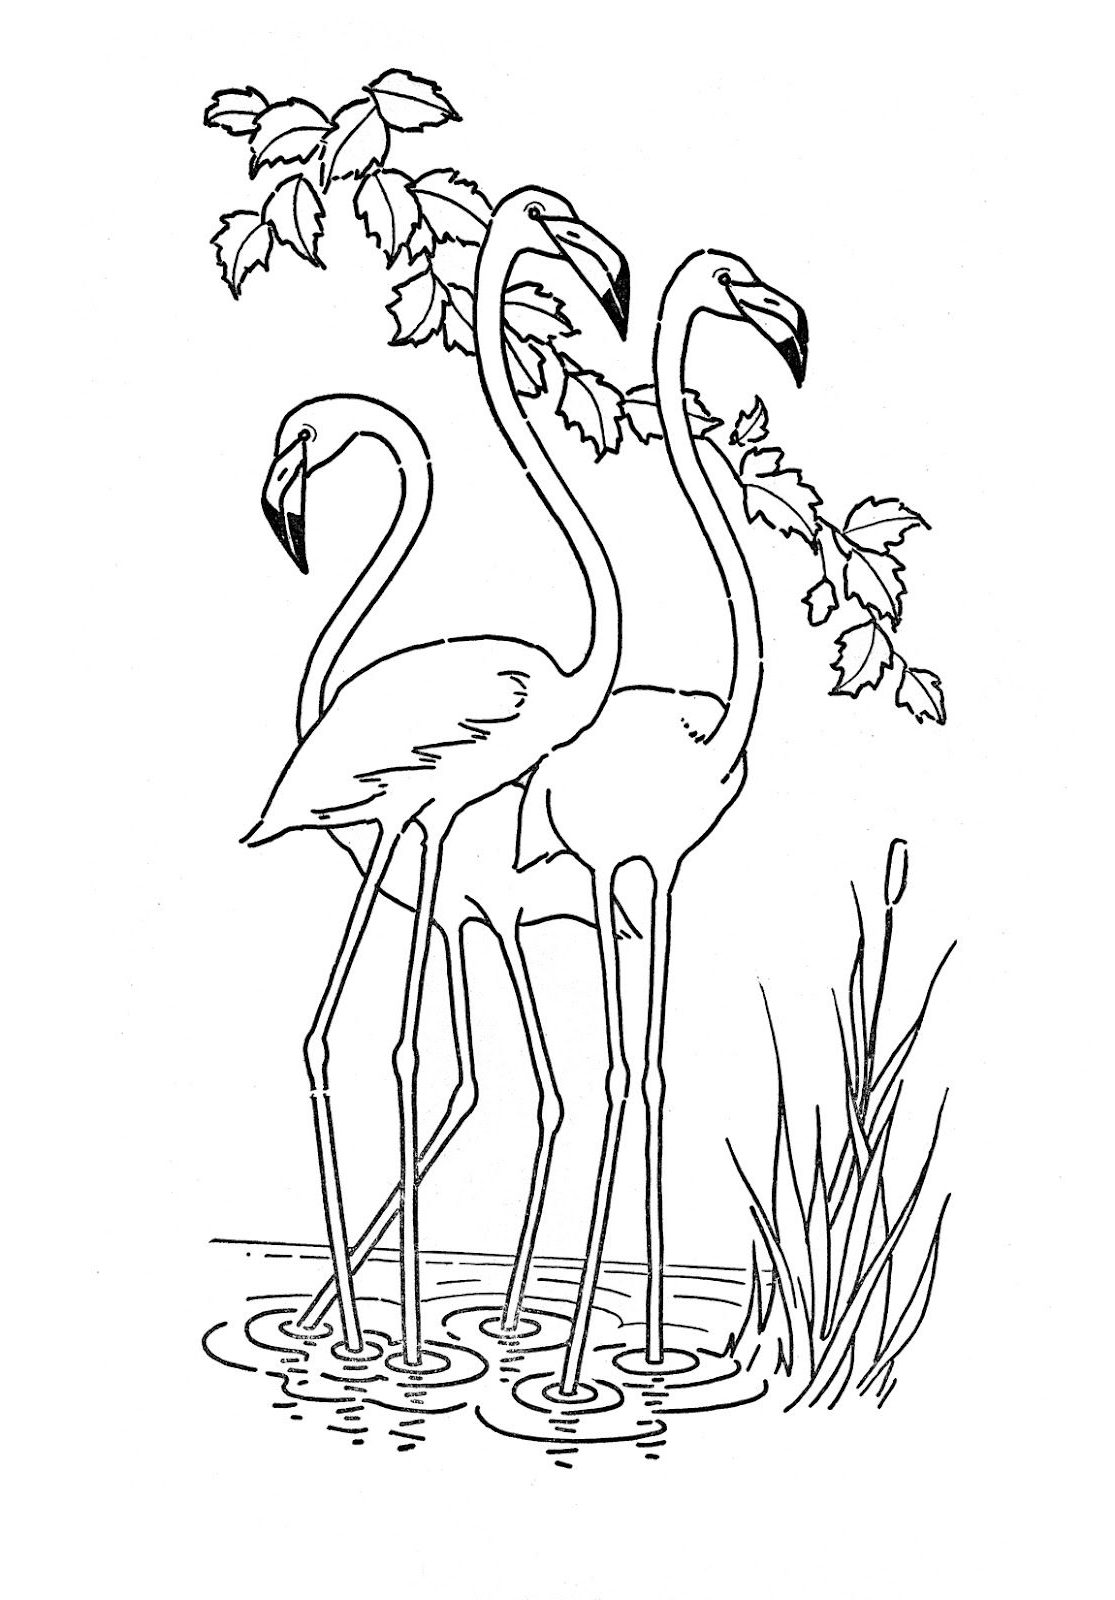 animal coloring pages for kids free printable cute animal coloring pages coloring home animal for pages kids coloring